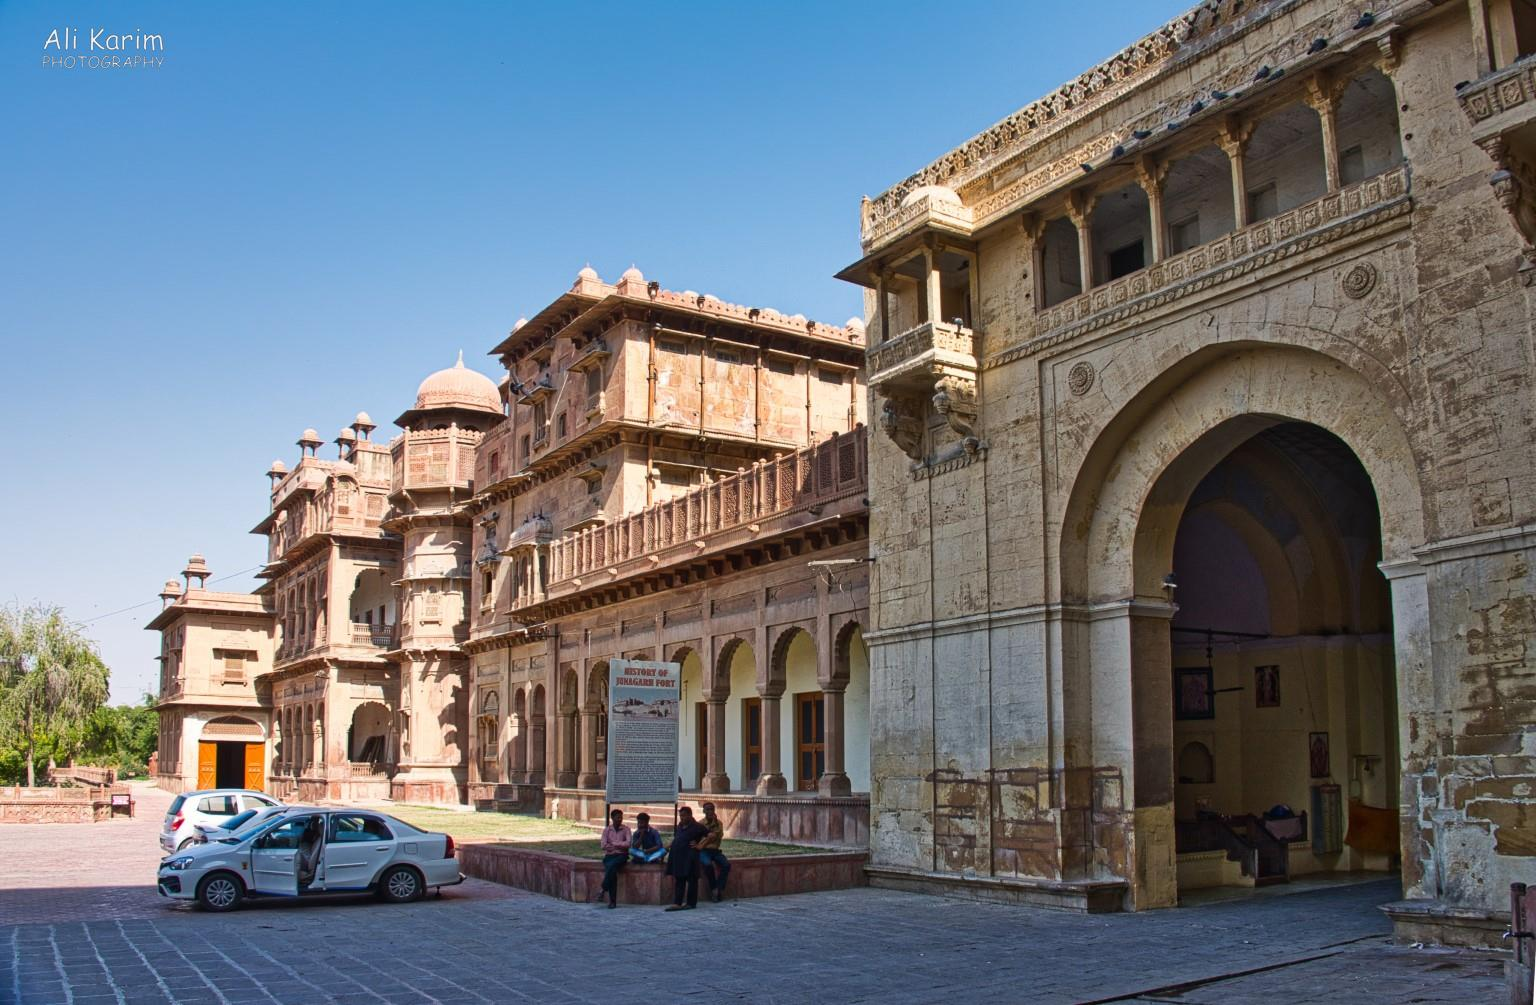 Bikaner, Rajasthan One part of the Junagarh Fort